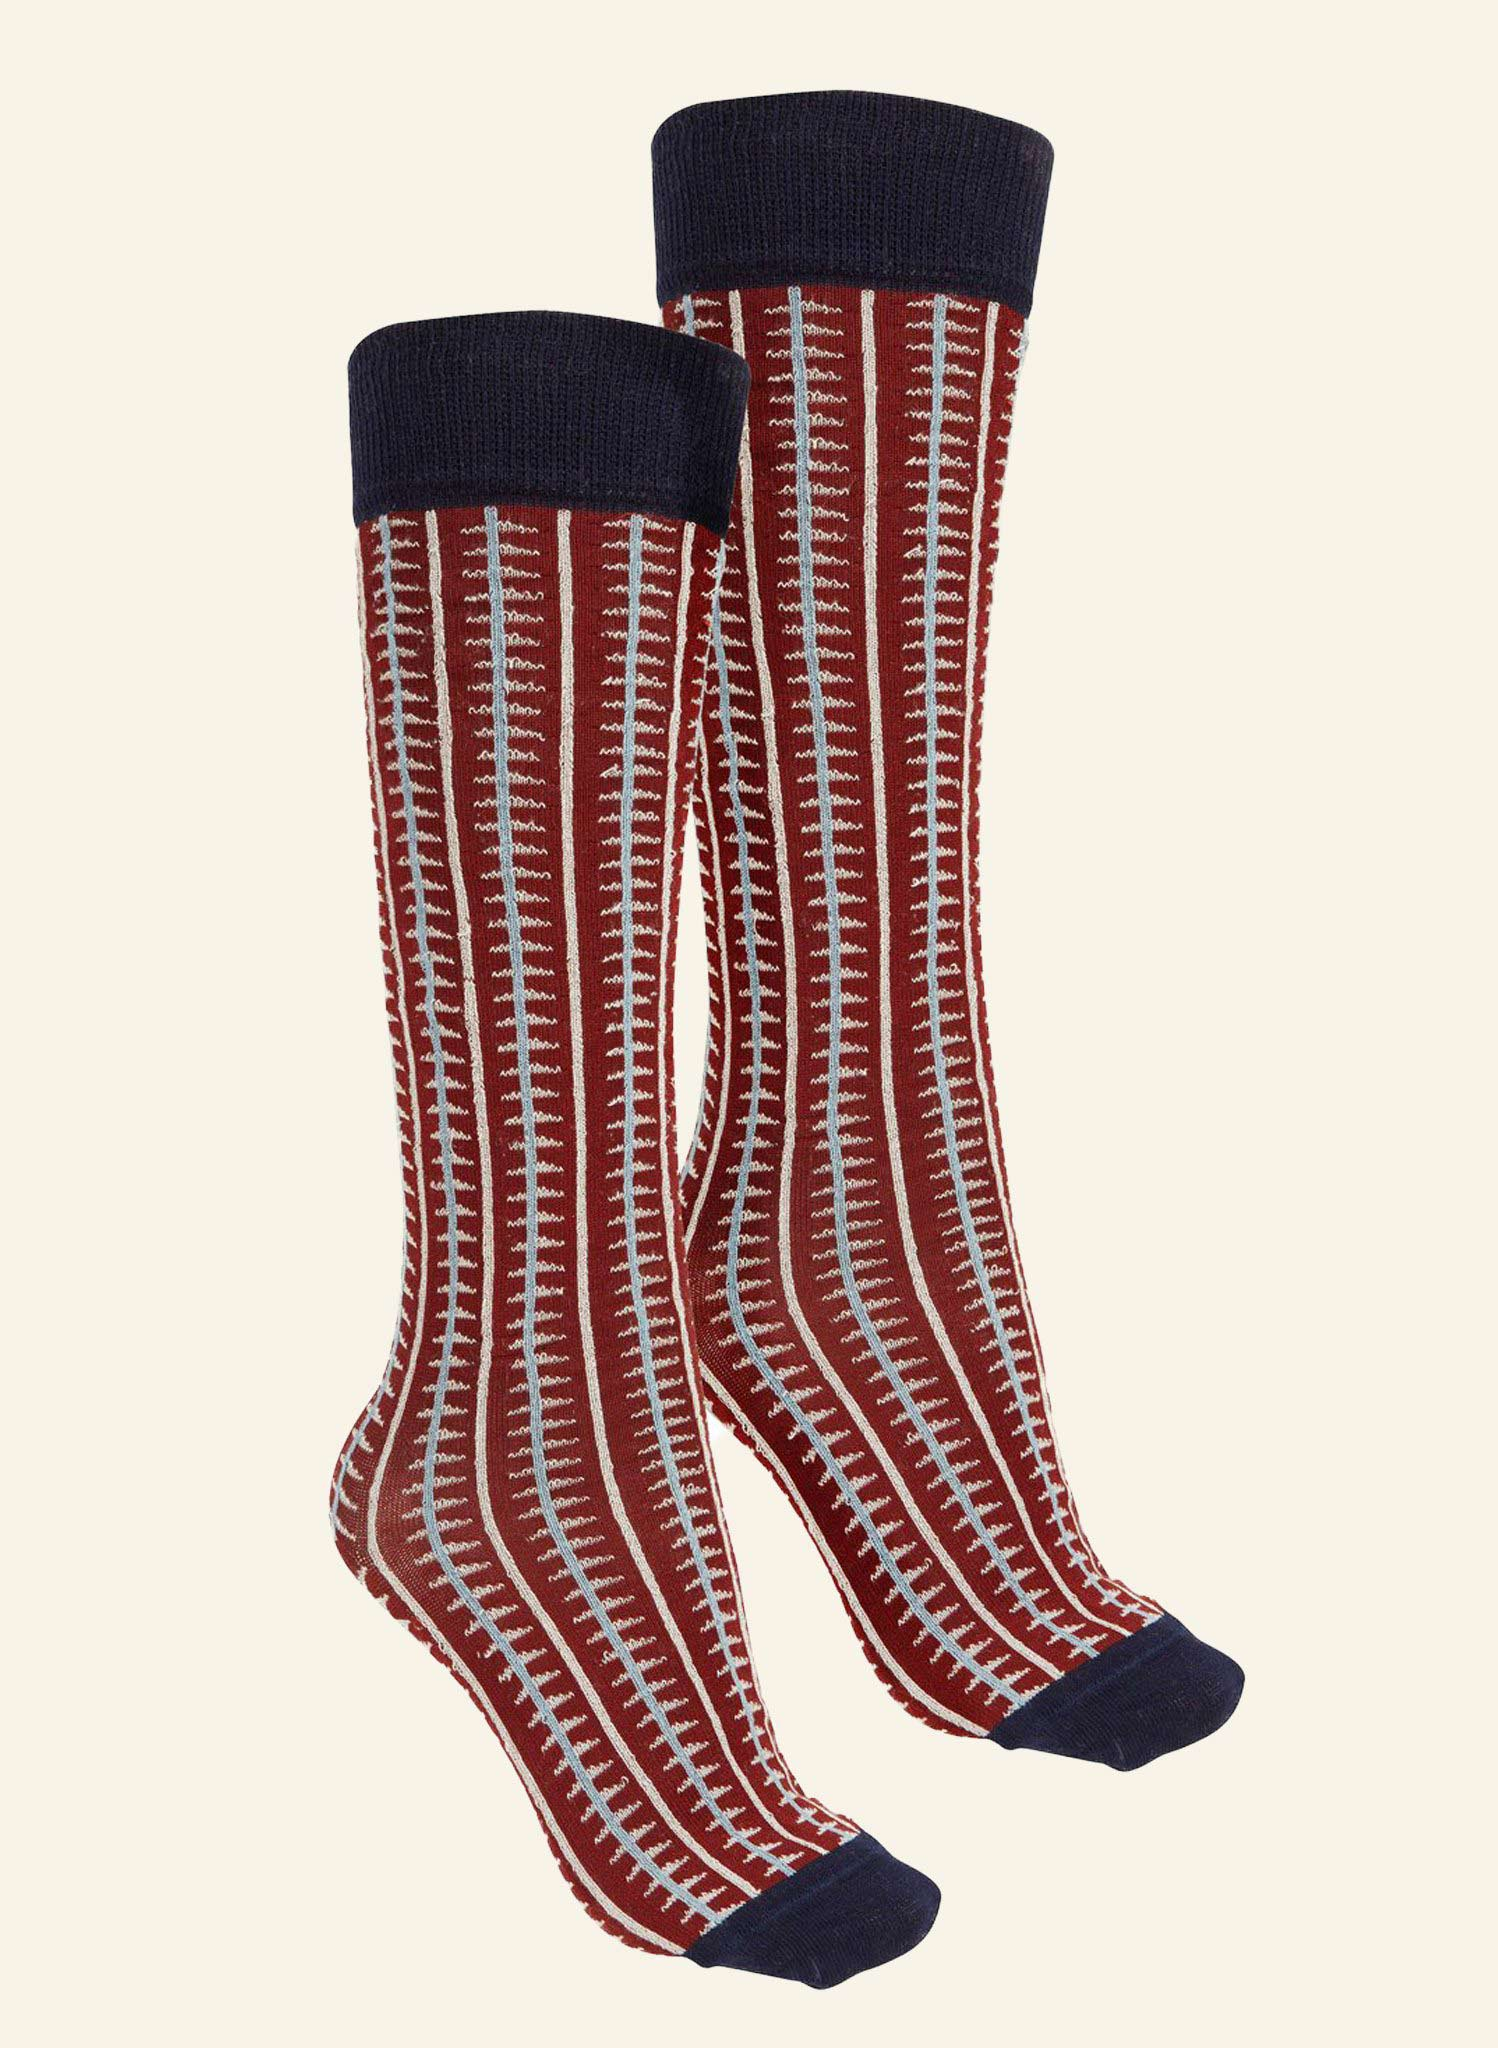 Knee High Socks - Red Rocket - Cotton